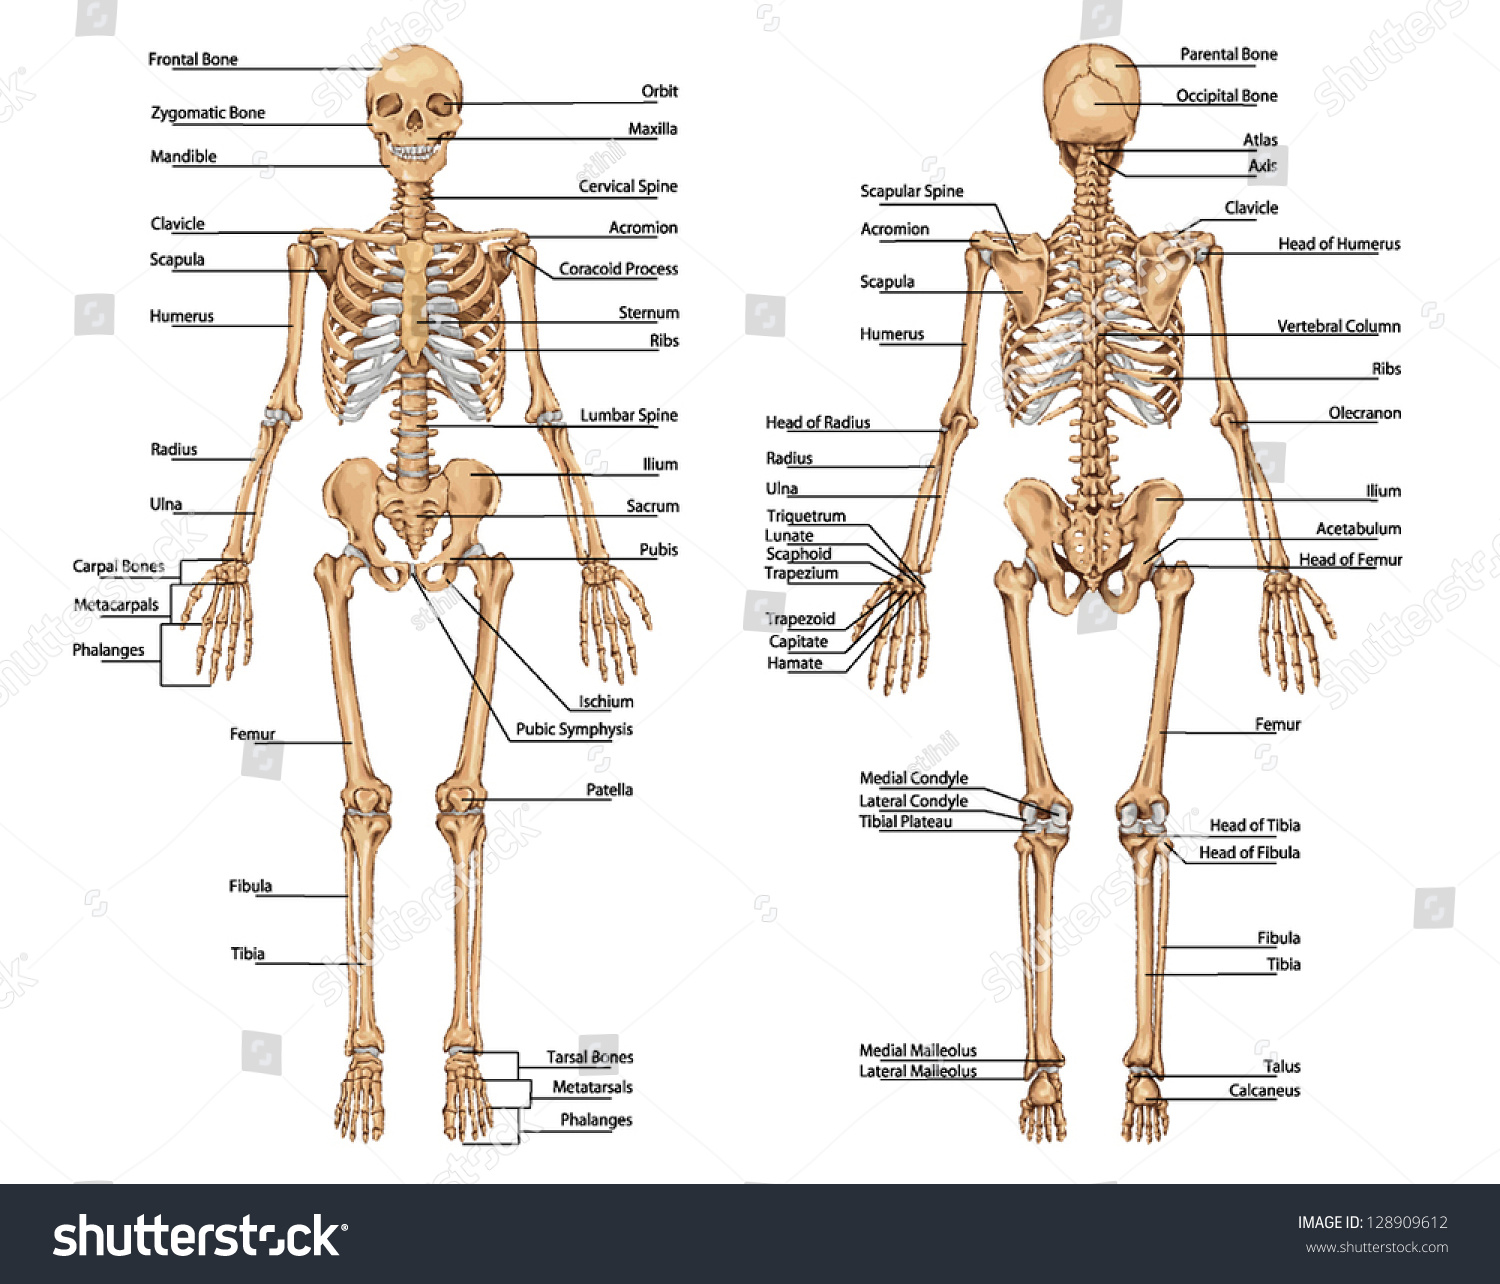 Royalty Free Human Skeleton From The Posterior And